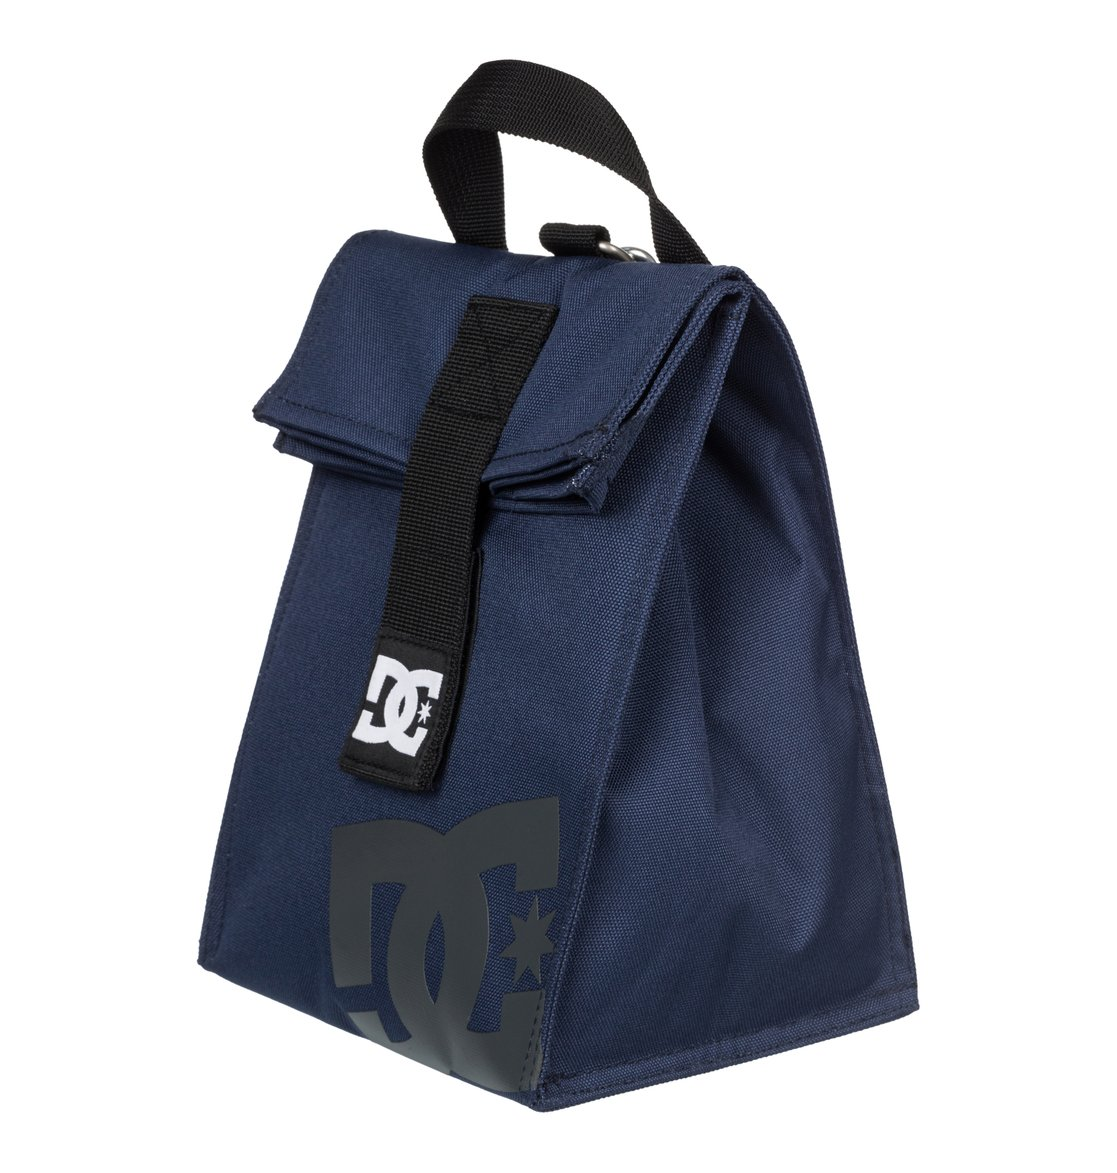 Dc Lunch Sack 3153130102 Dc Shoes